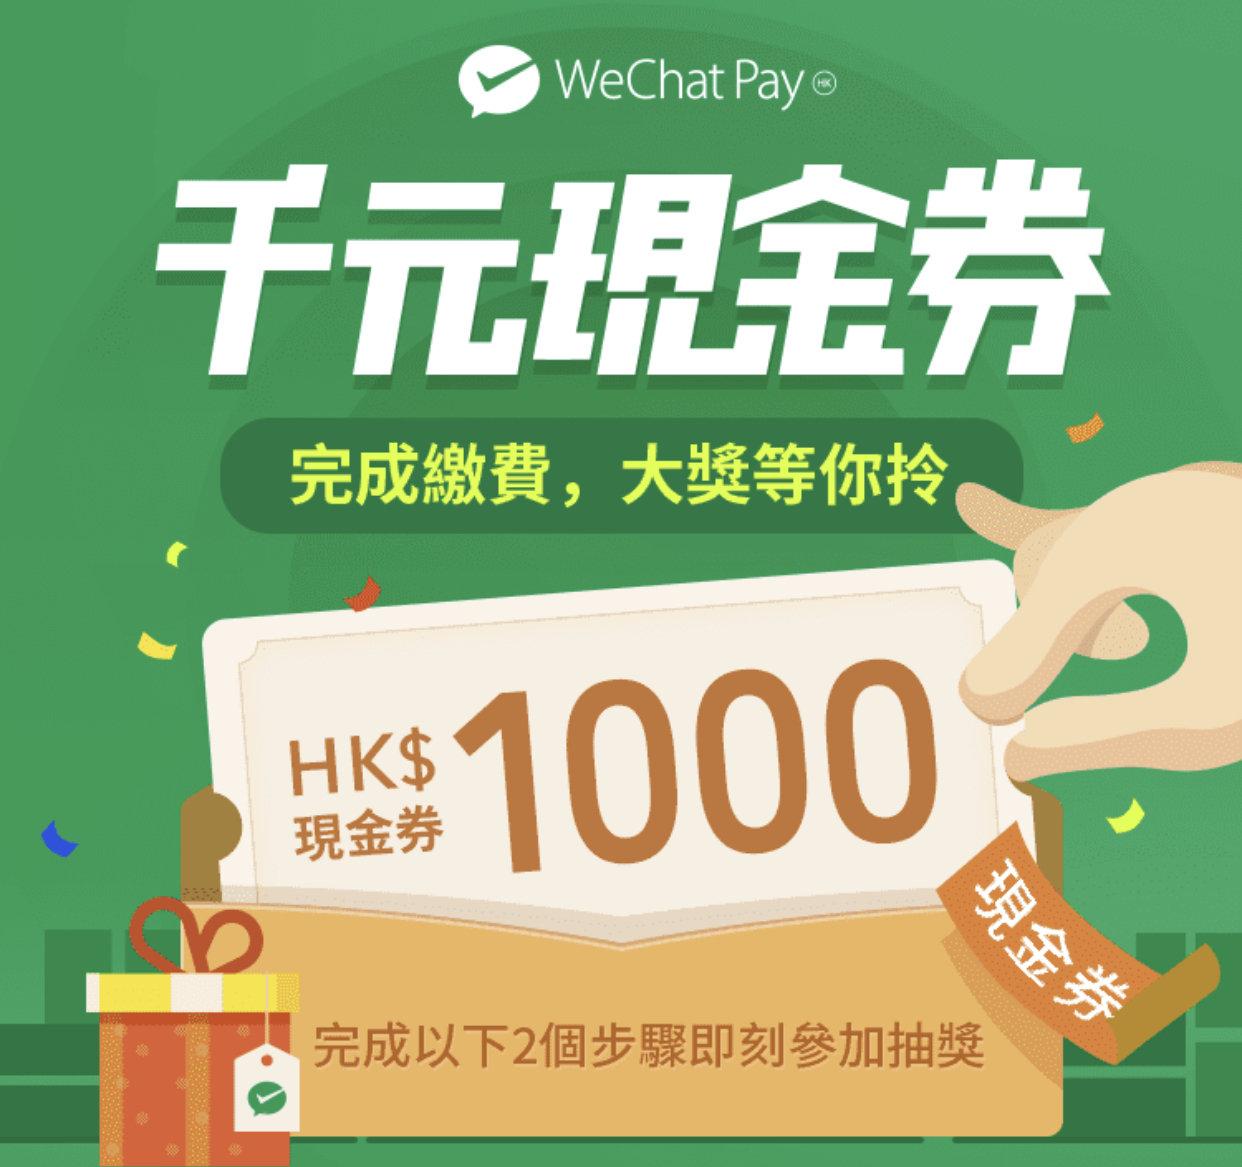 WeChat Pay千元抽獎